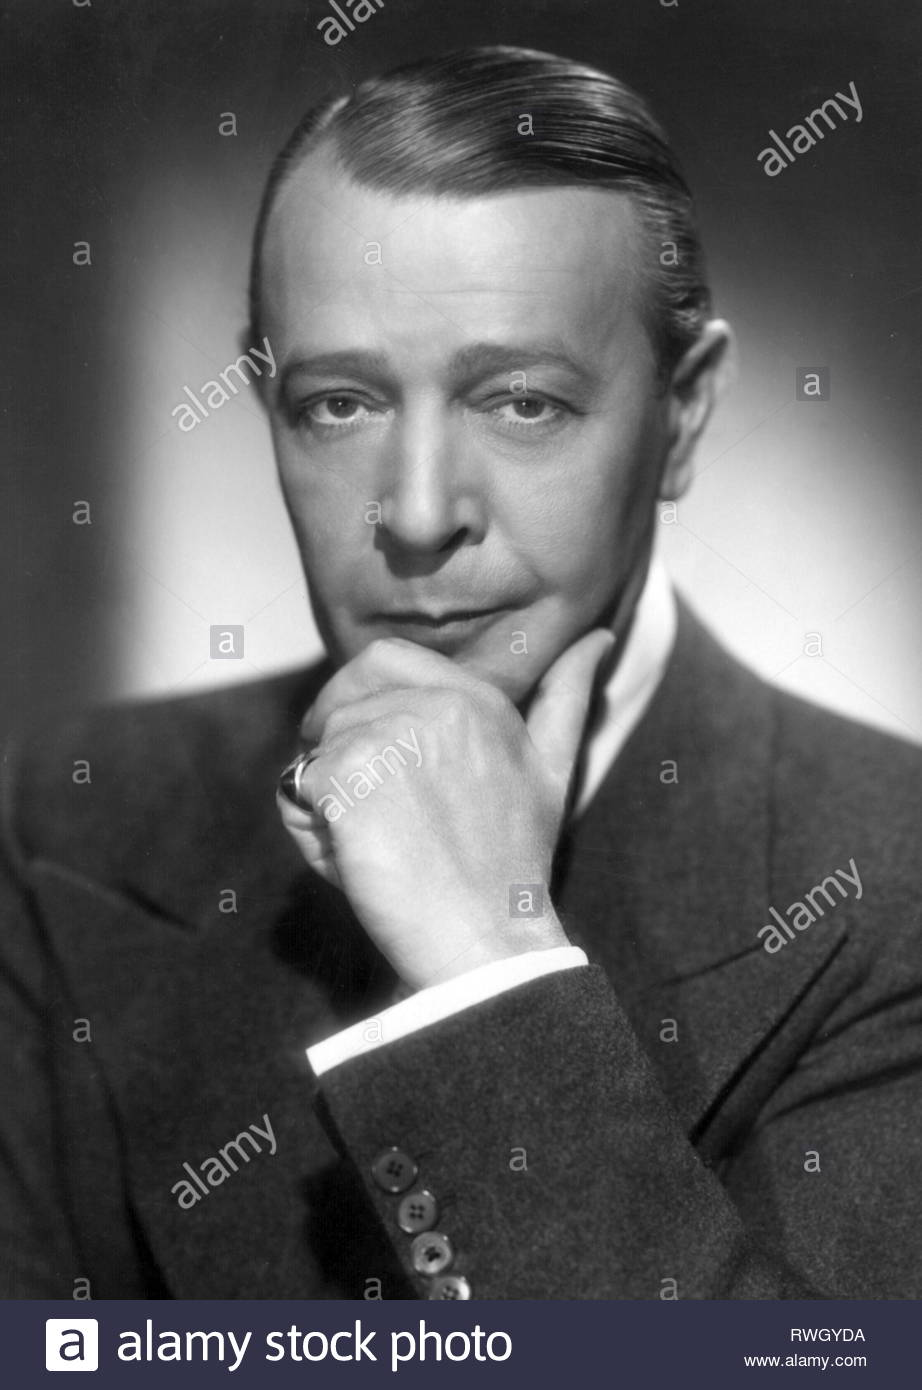 Alexander, Georg, 3.4.1888 - 30.10.1945, German actor, portrait, 1930s, Additional-Rights-Clearance-Info-Not-Available - Stock Image